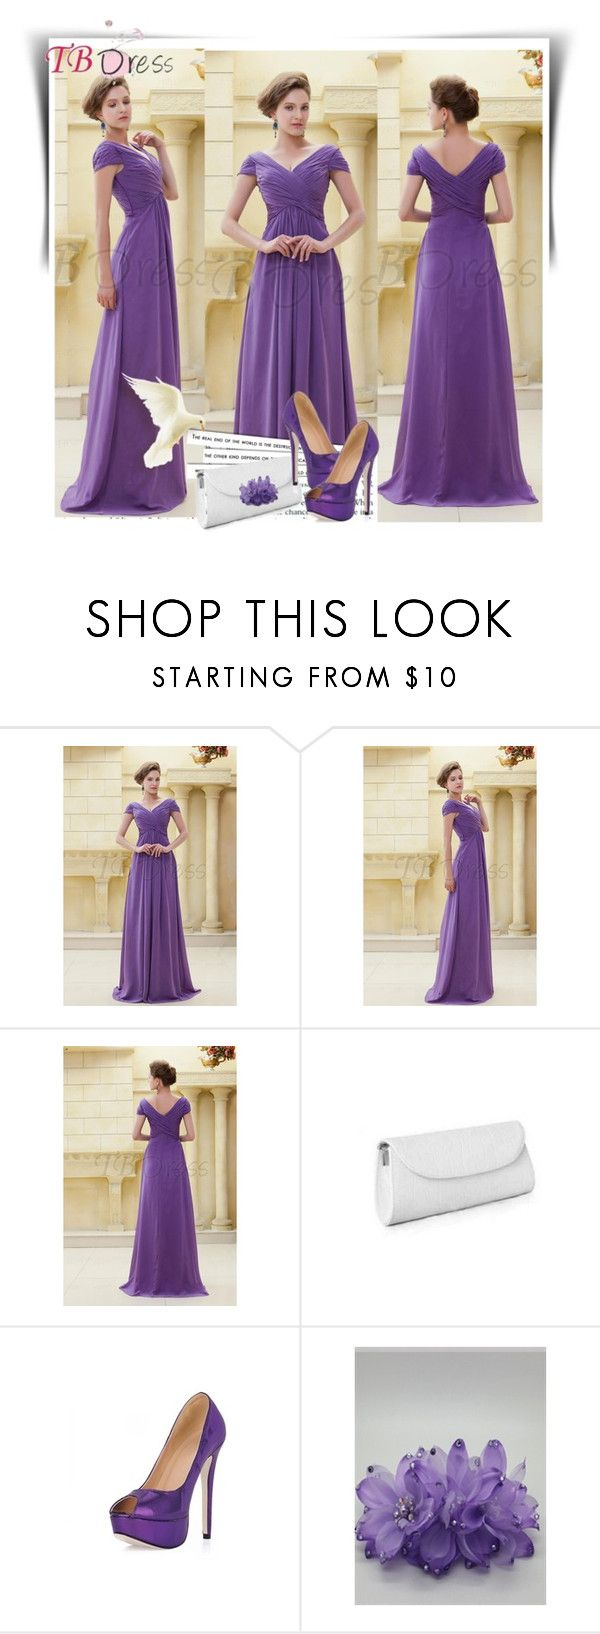 """""""TB Dress"""" by dalila-mujic ❤ liked on Polyvore featuring Retrò and tbdress"""